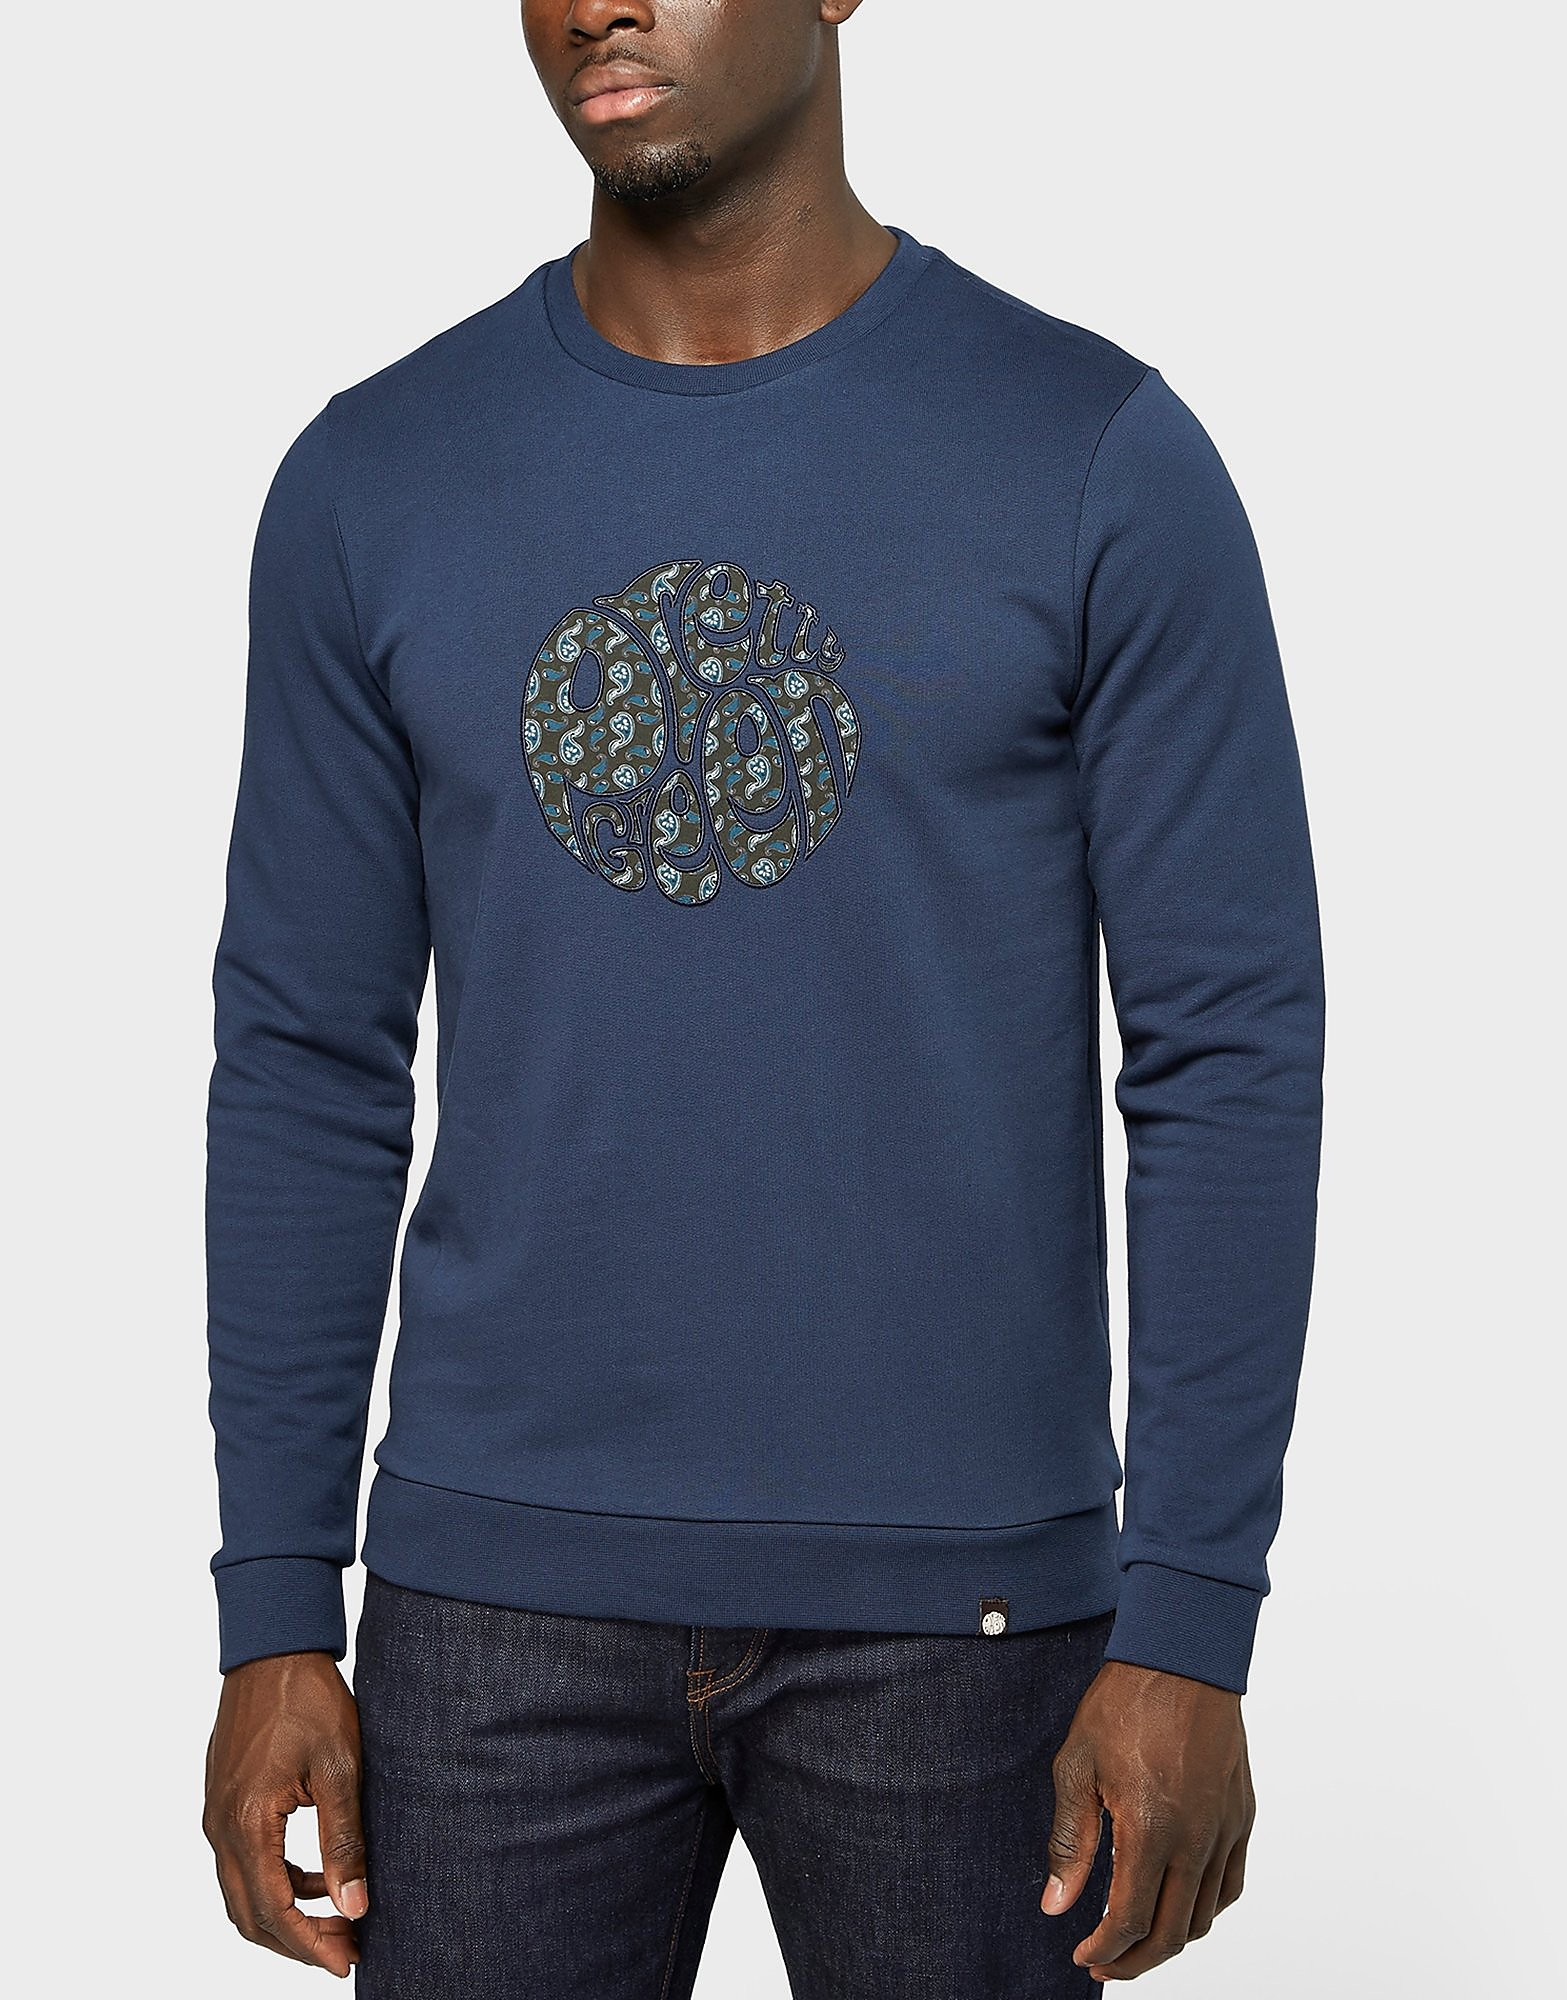 Pretty Green Applique Crew Sweatshirt - Exclusive